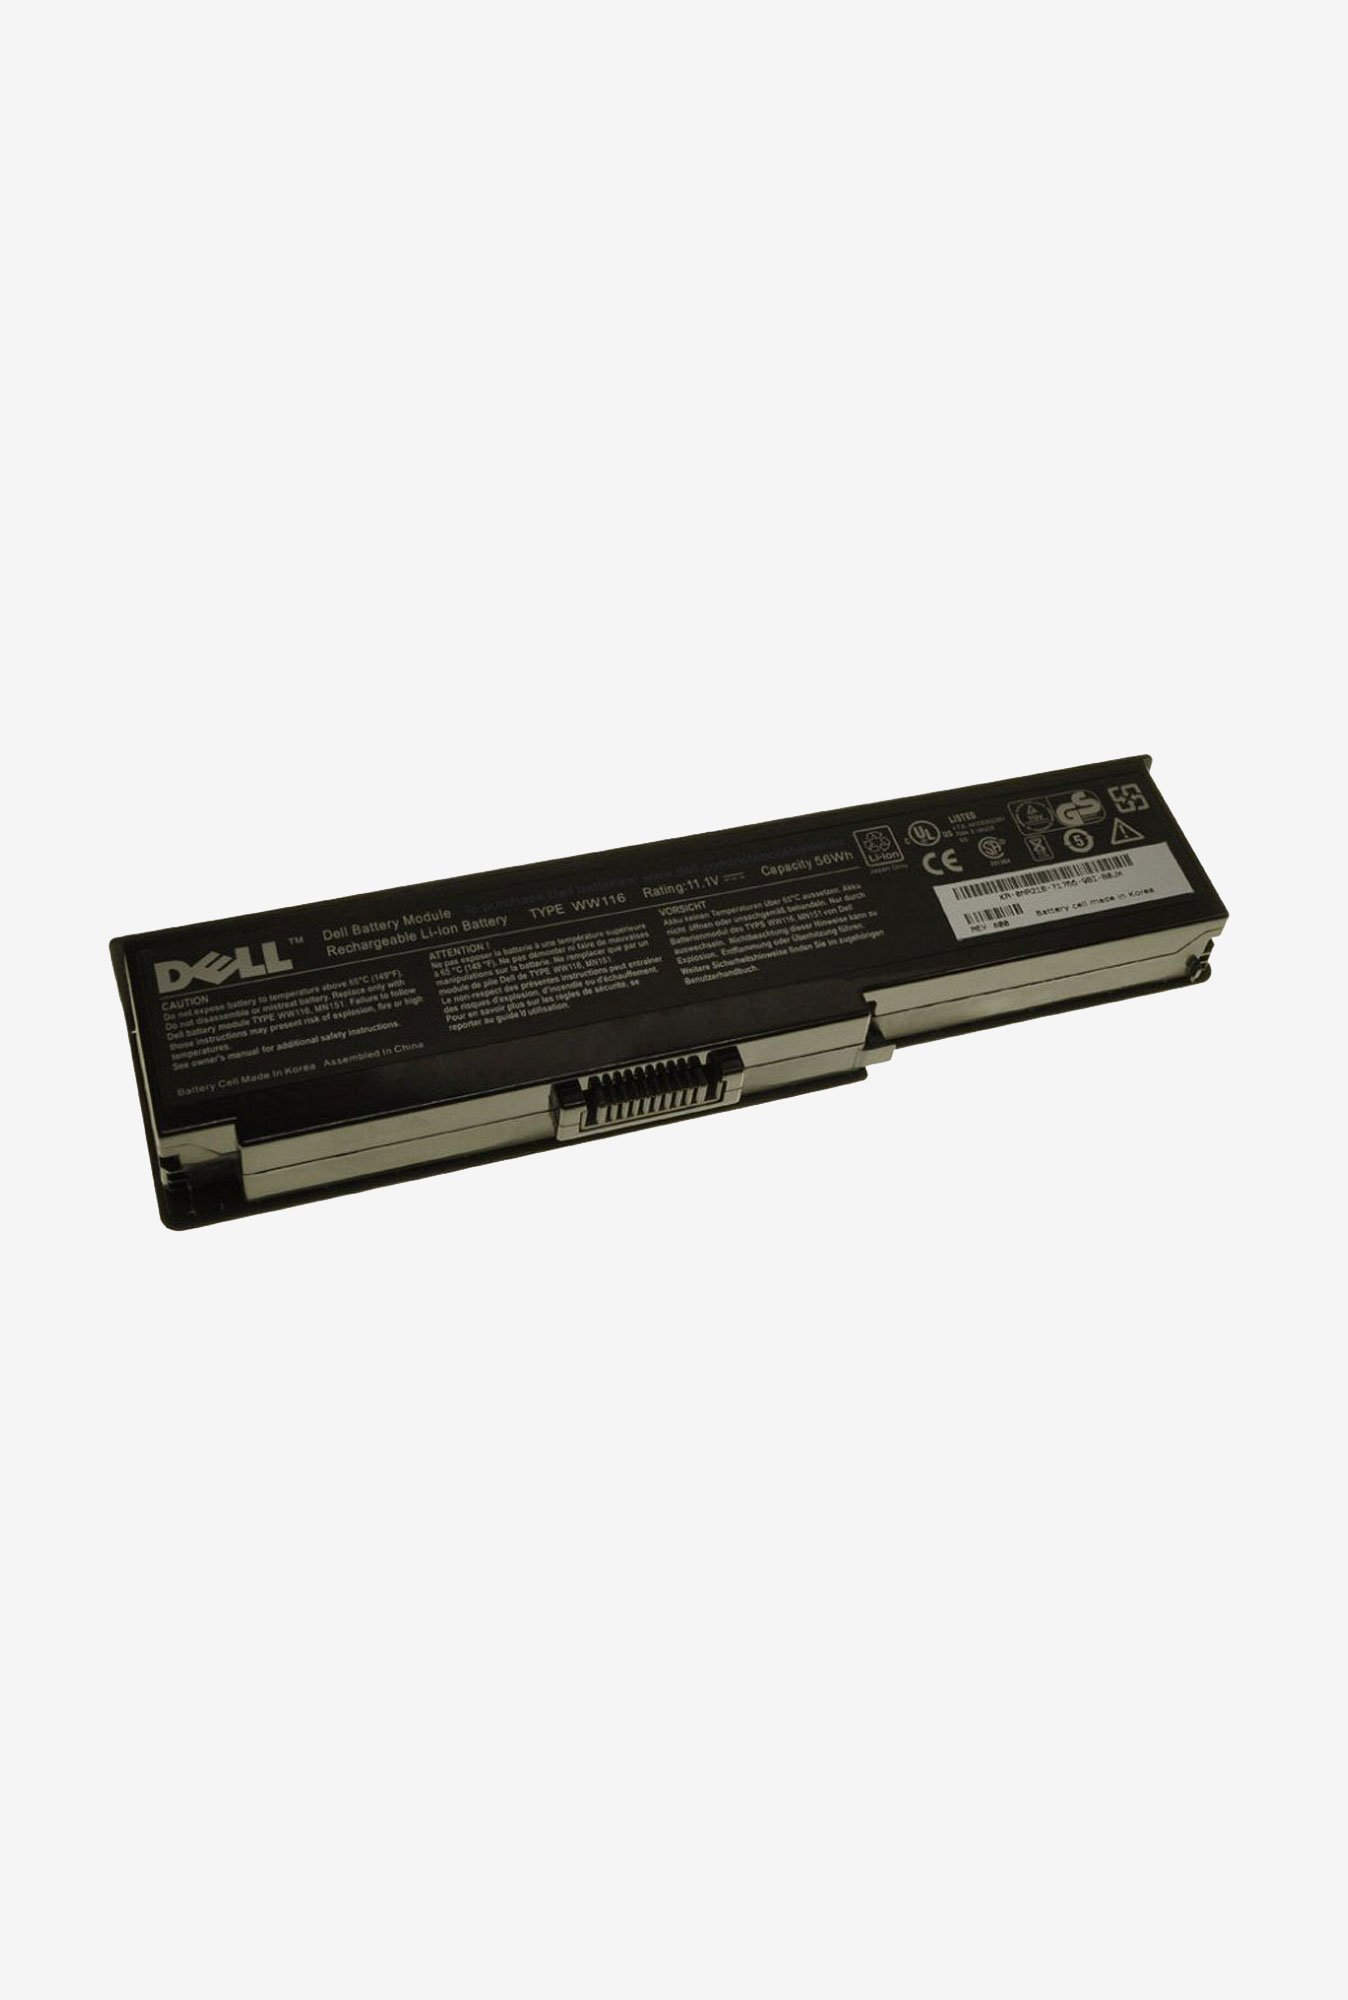 Dell FT079 4840 mAh Laptop Battery Black